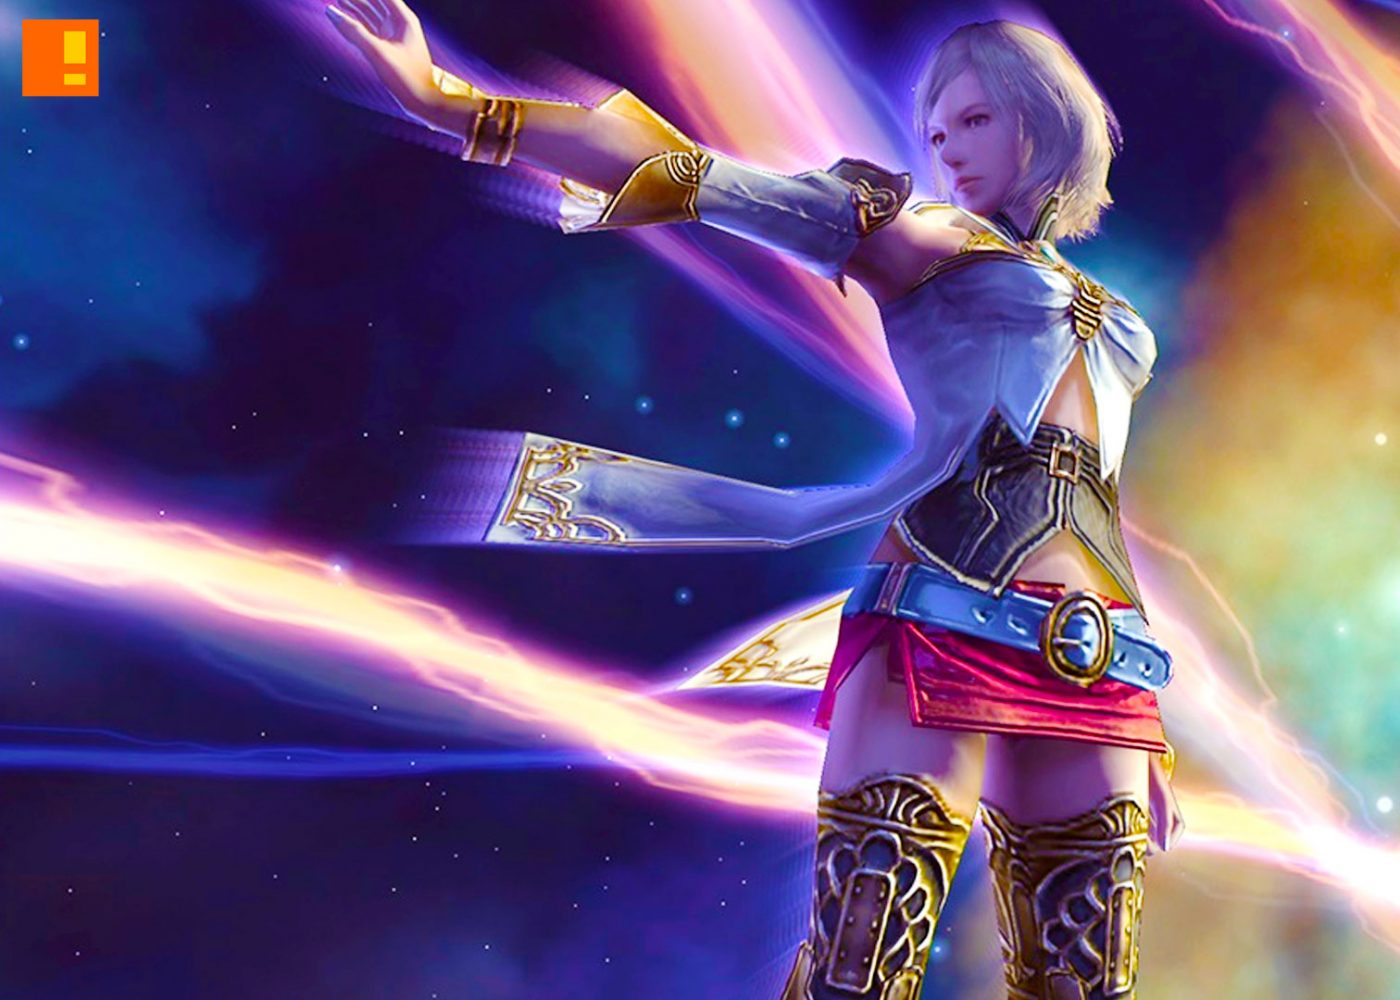 final fantasy 12, remastered, square enix, the action pixel, entertainment on tap, the zodiac age